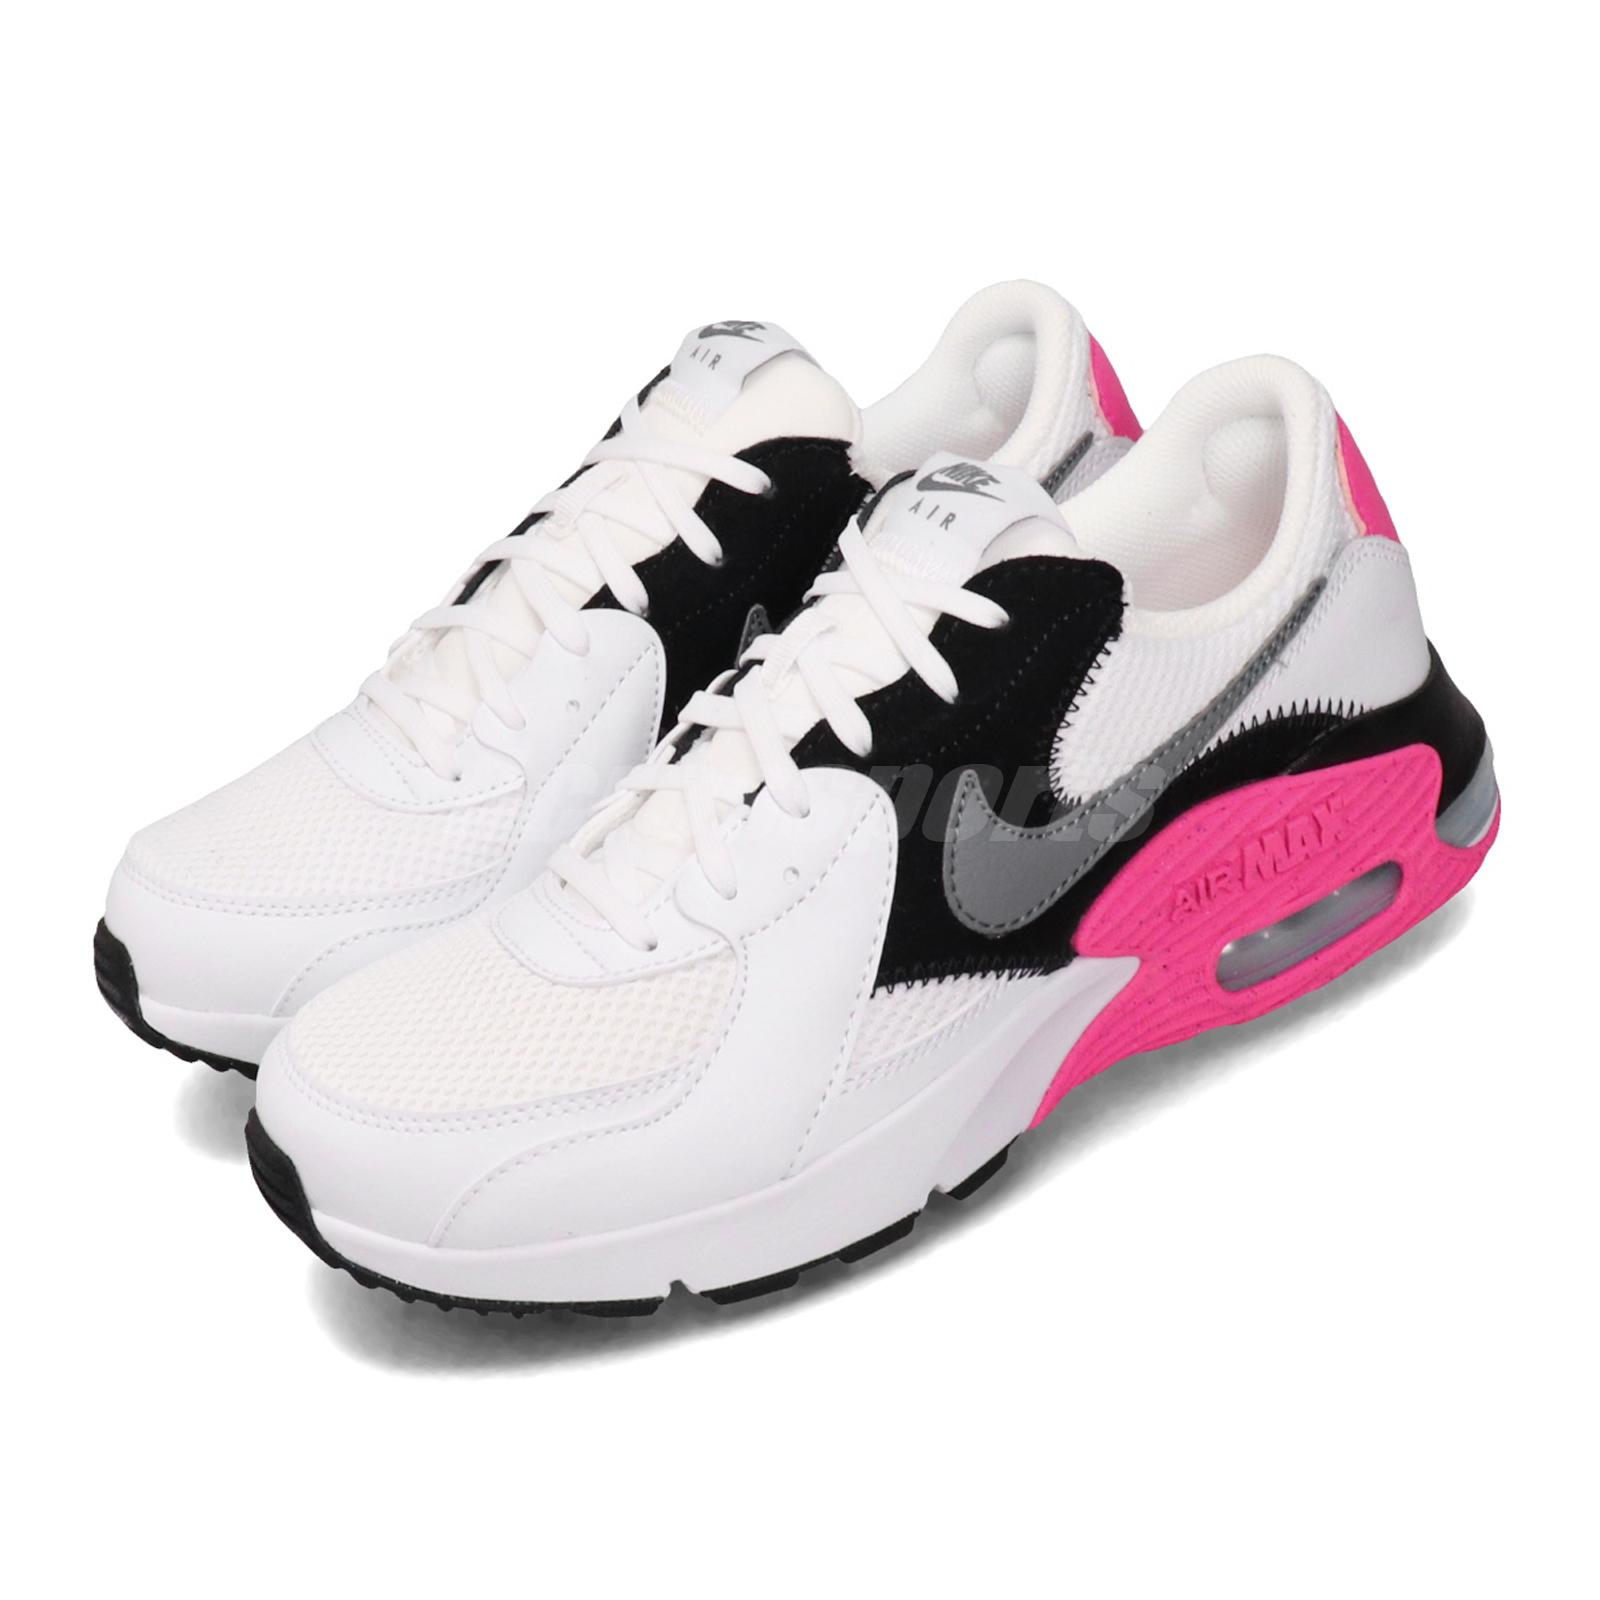 Details about Nike Wmns Air Max Excee White Grey Black Pink Women Casual  Shoes CD5432-100